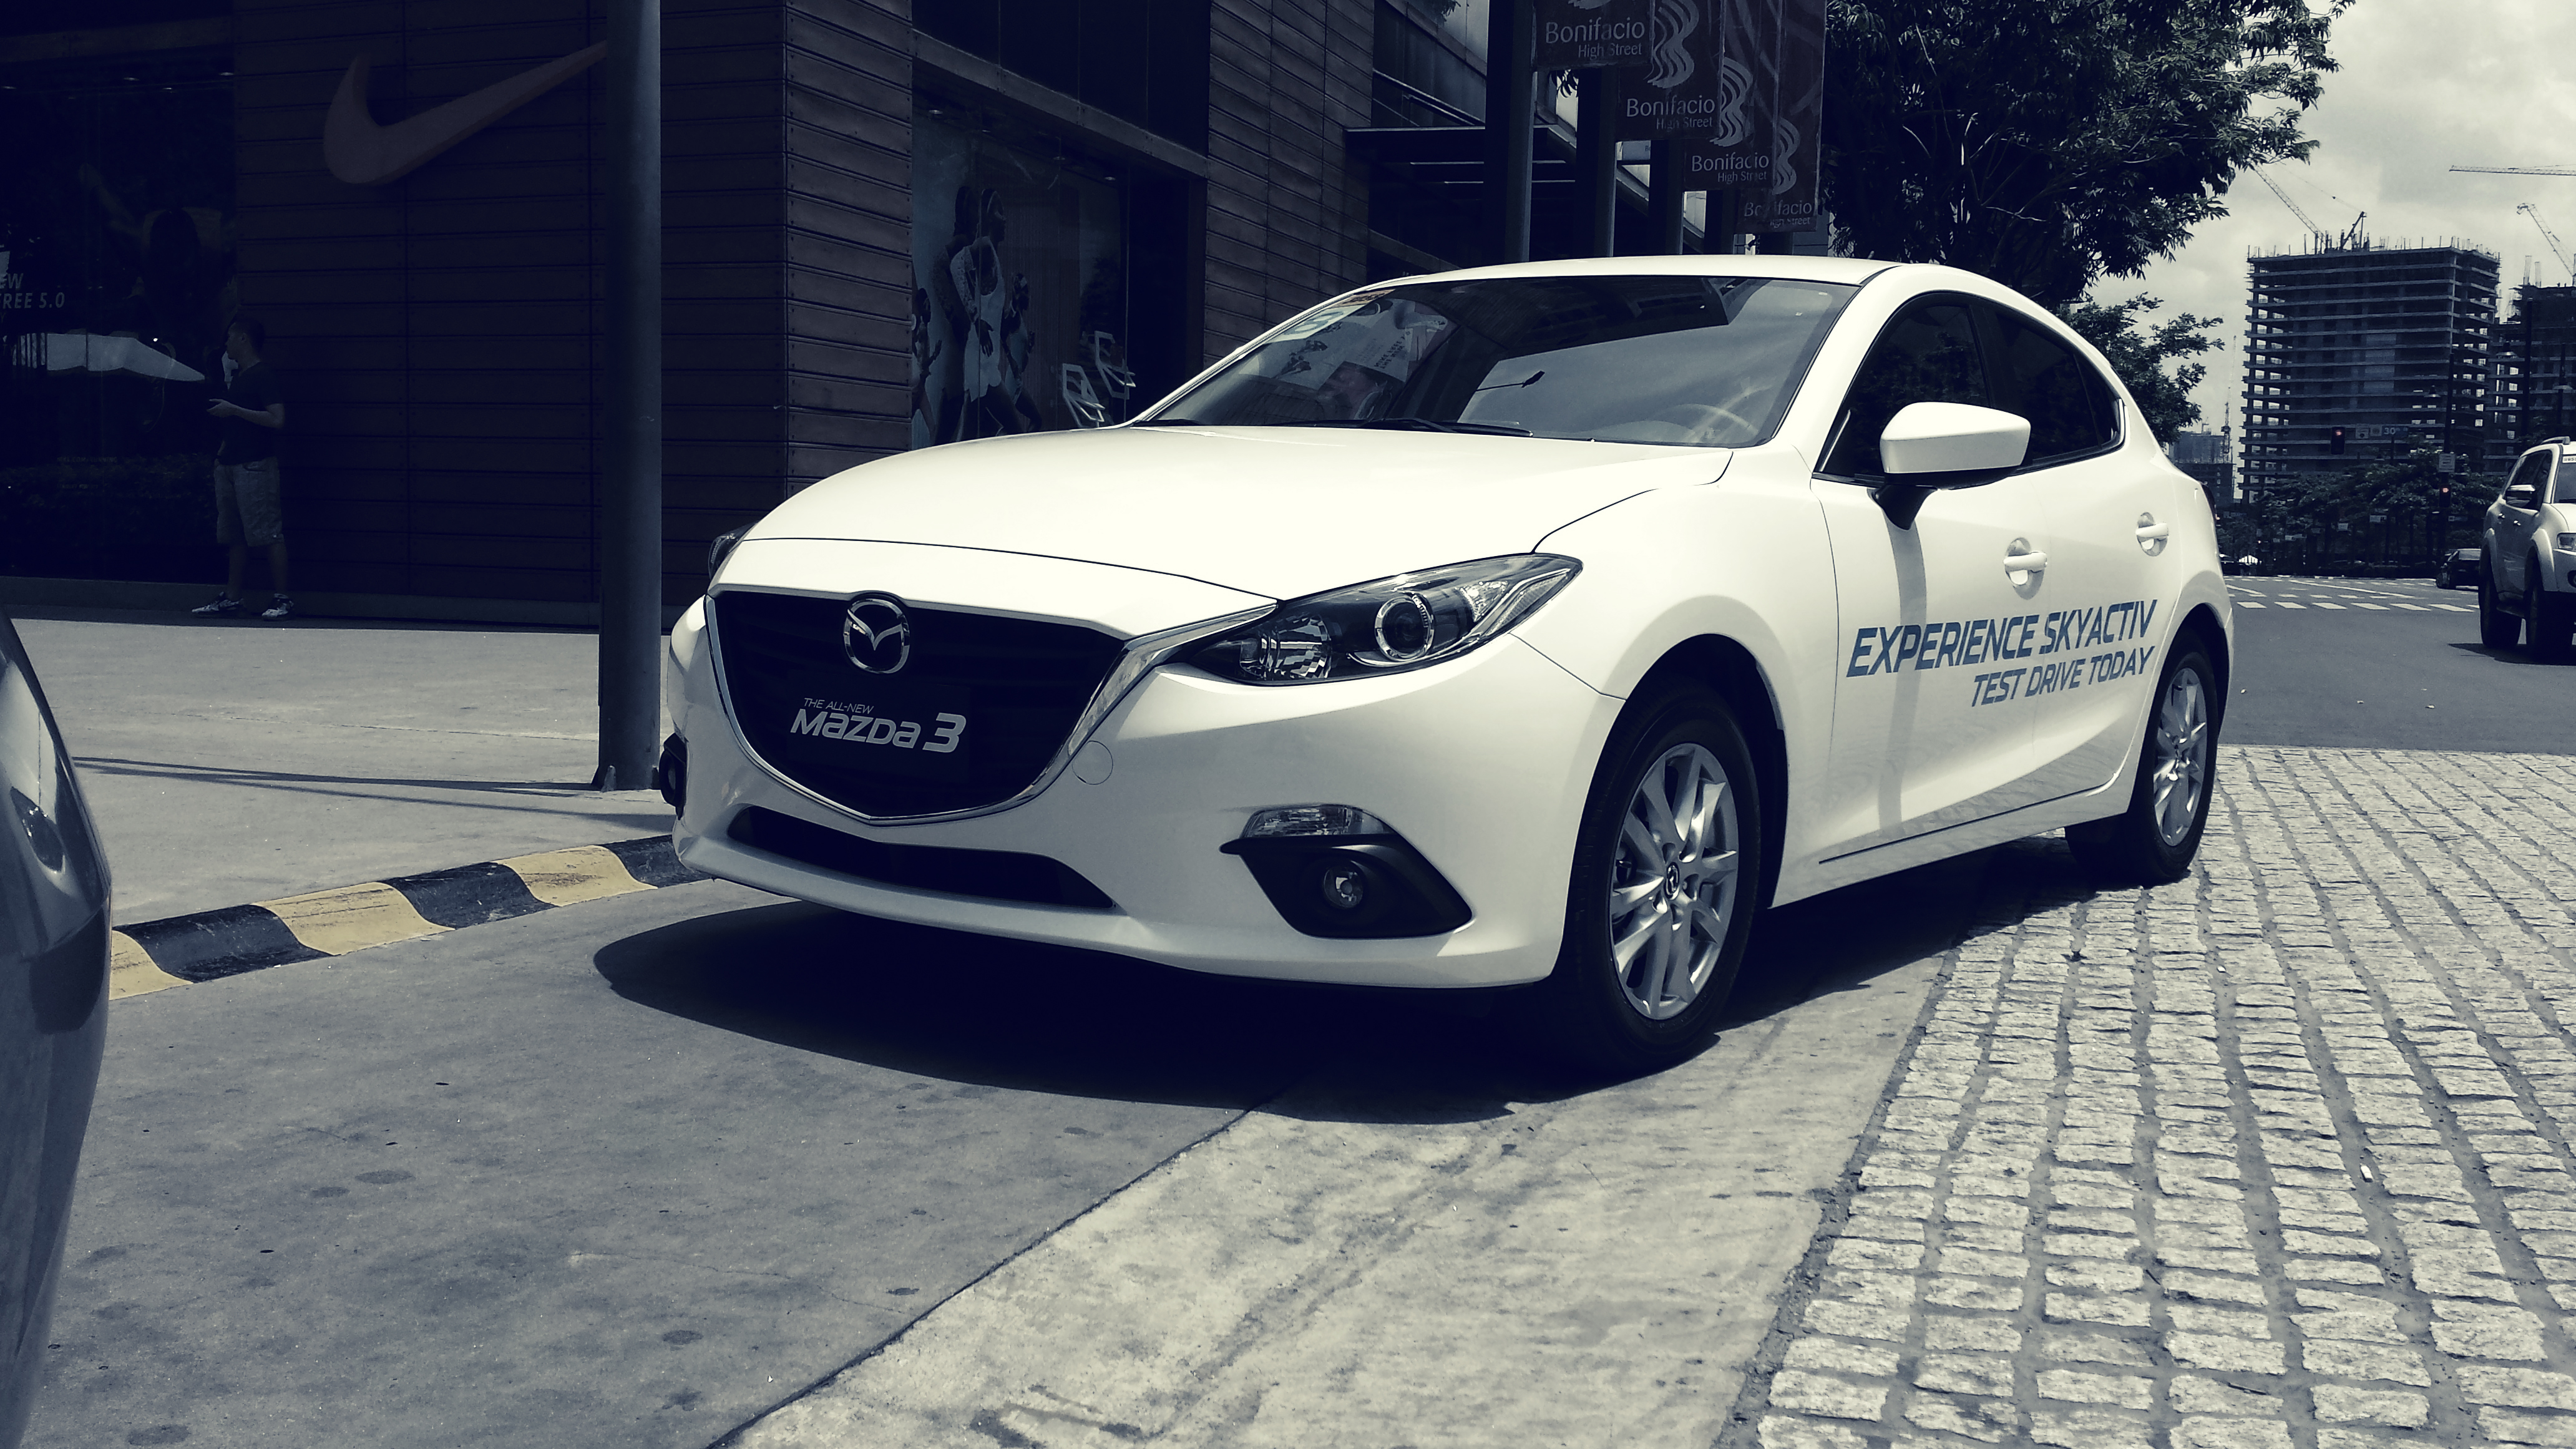 s mazda models the interior standout inside makes signature new design explore a what way